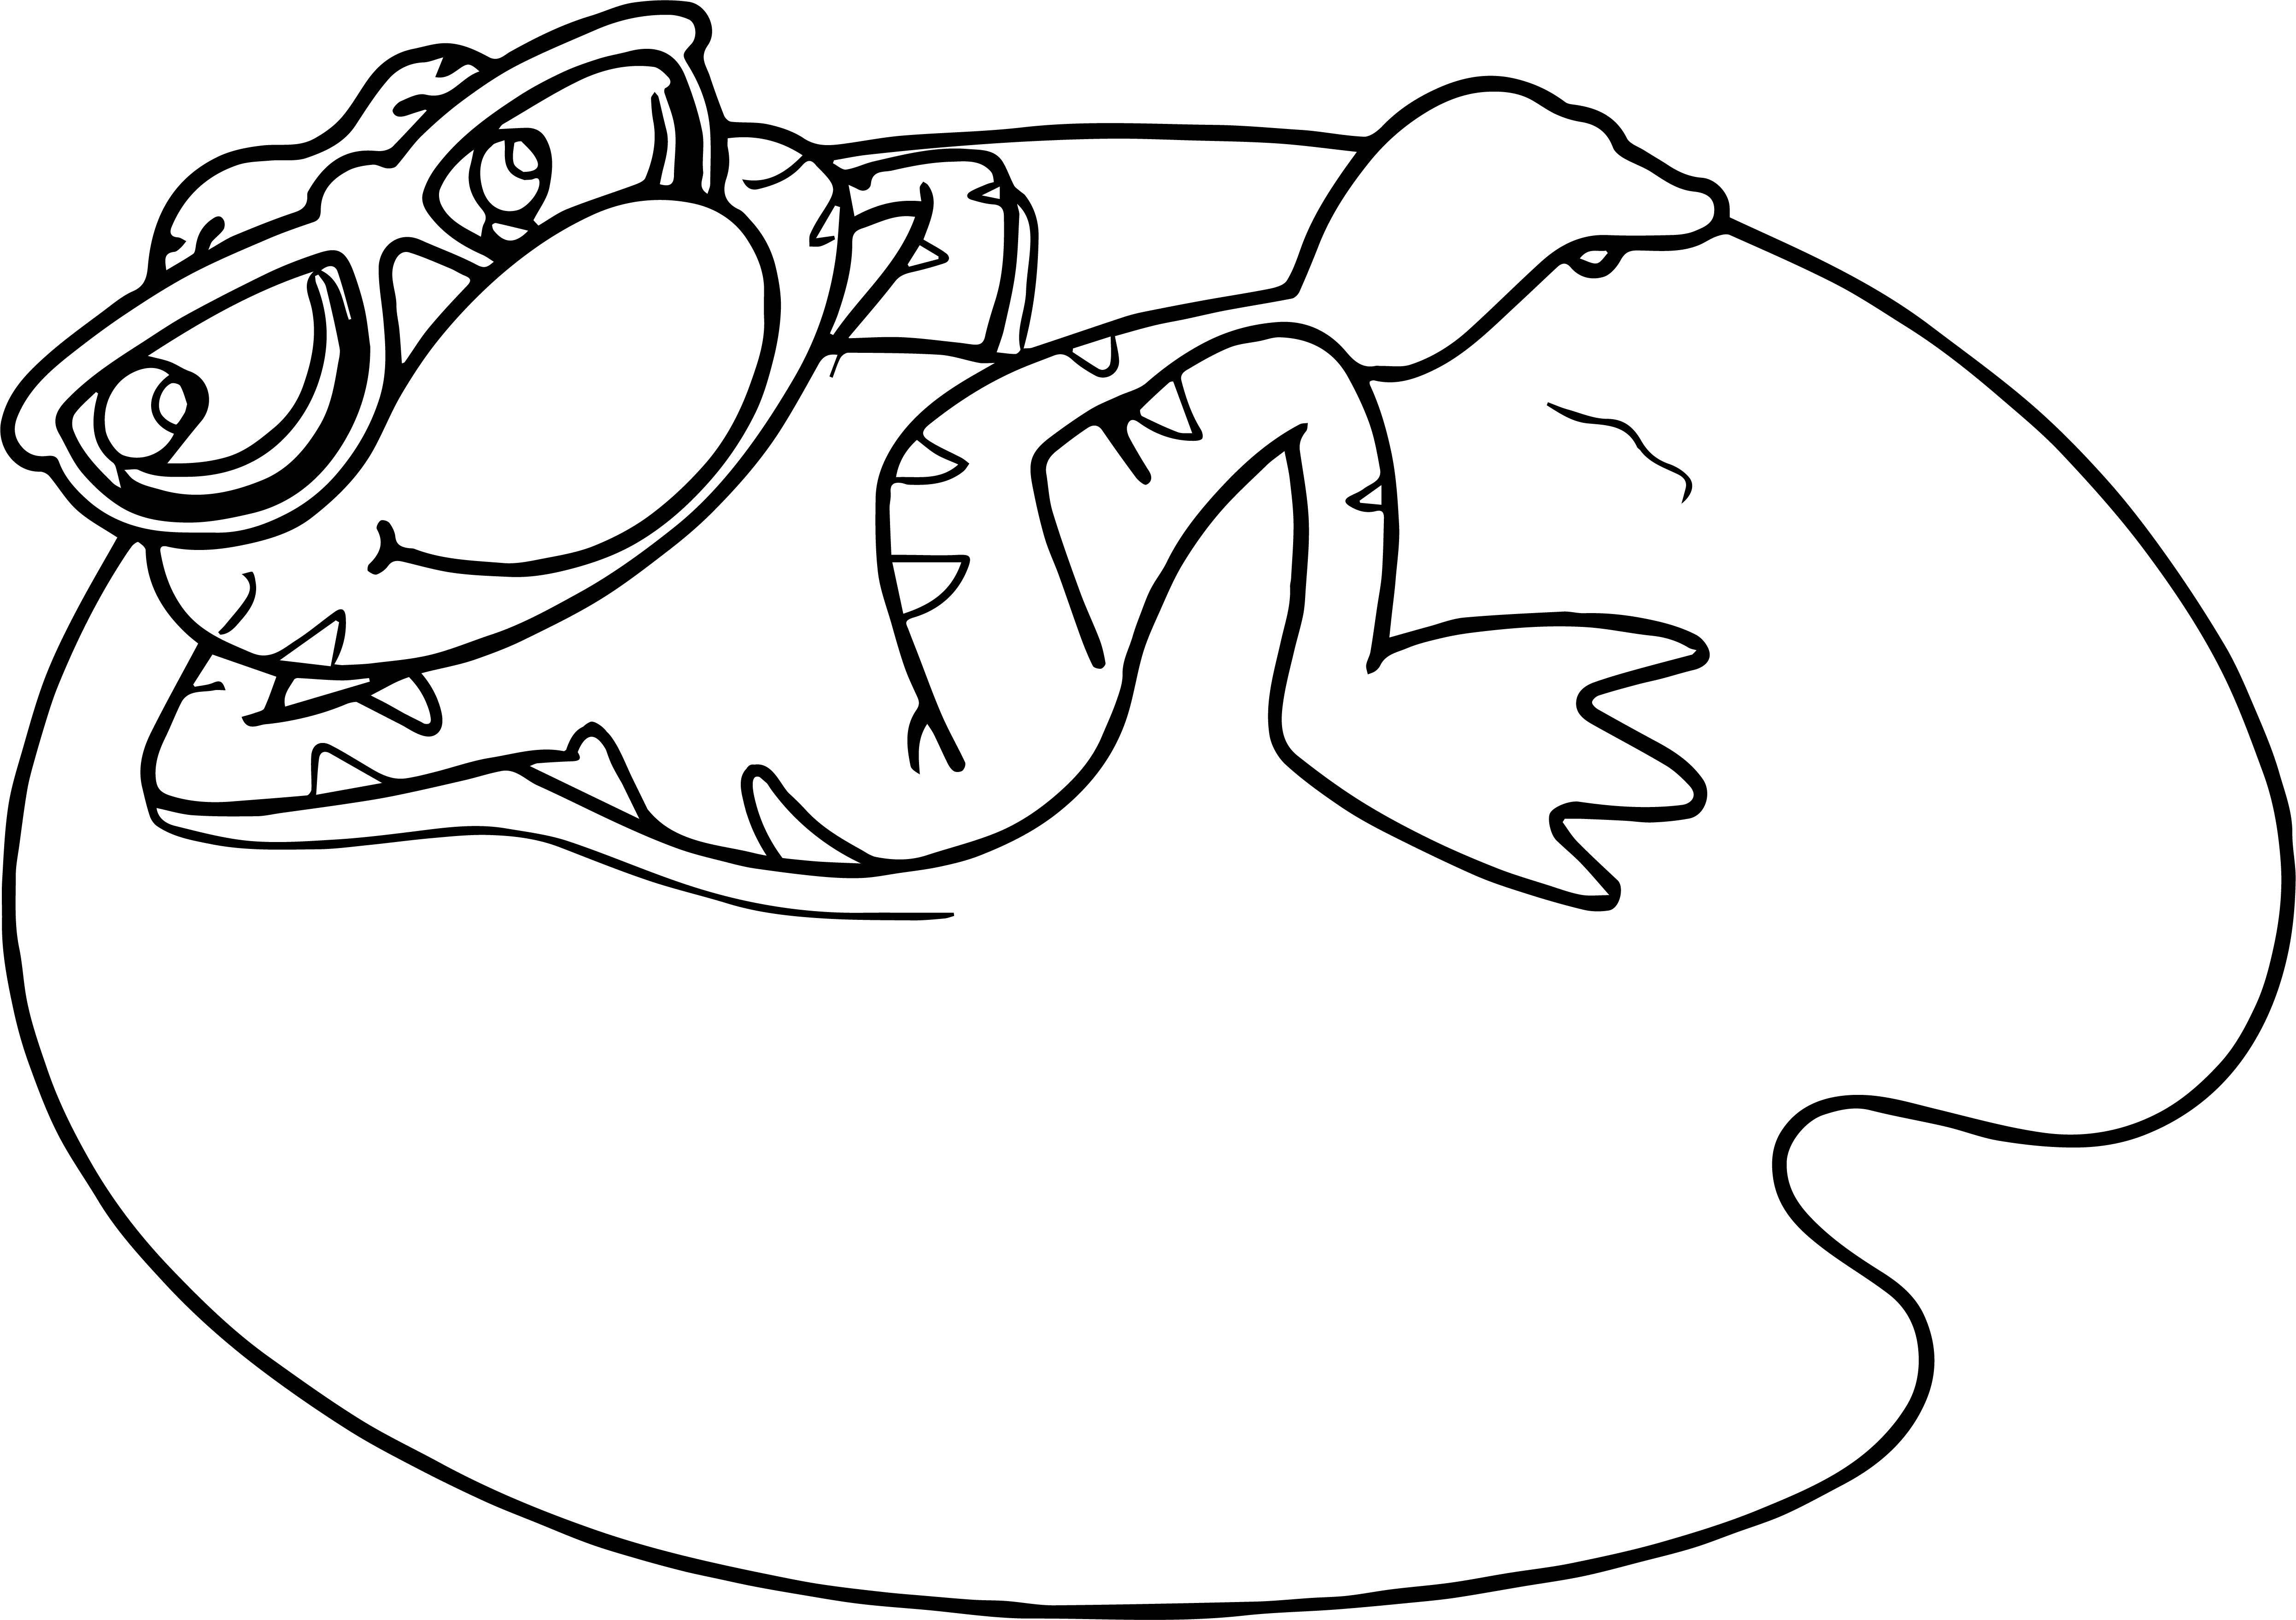 Frog Palette Coloring Page